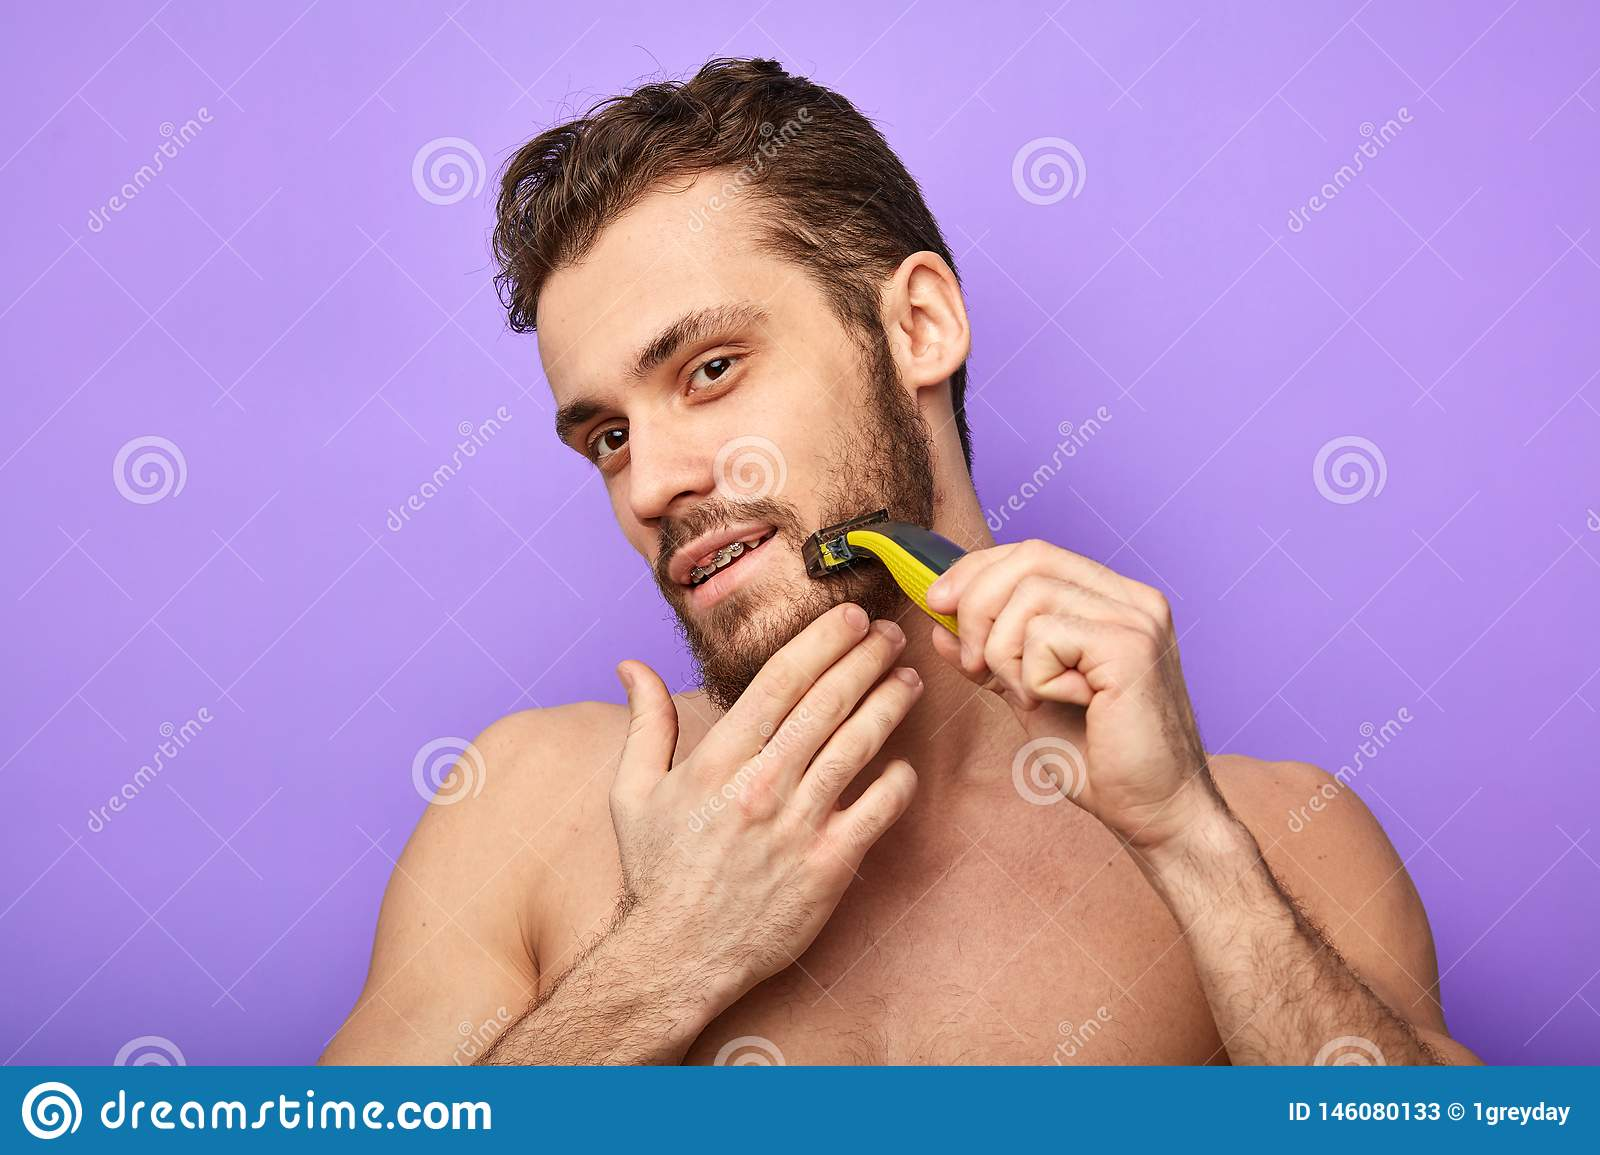 Naked muscular man is standing with razor in hand while shaving.